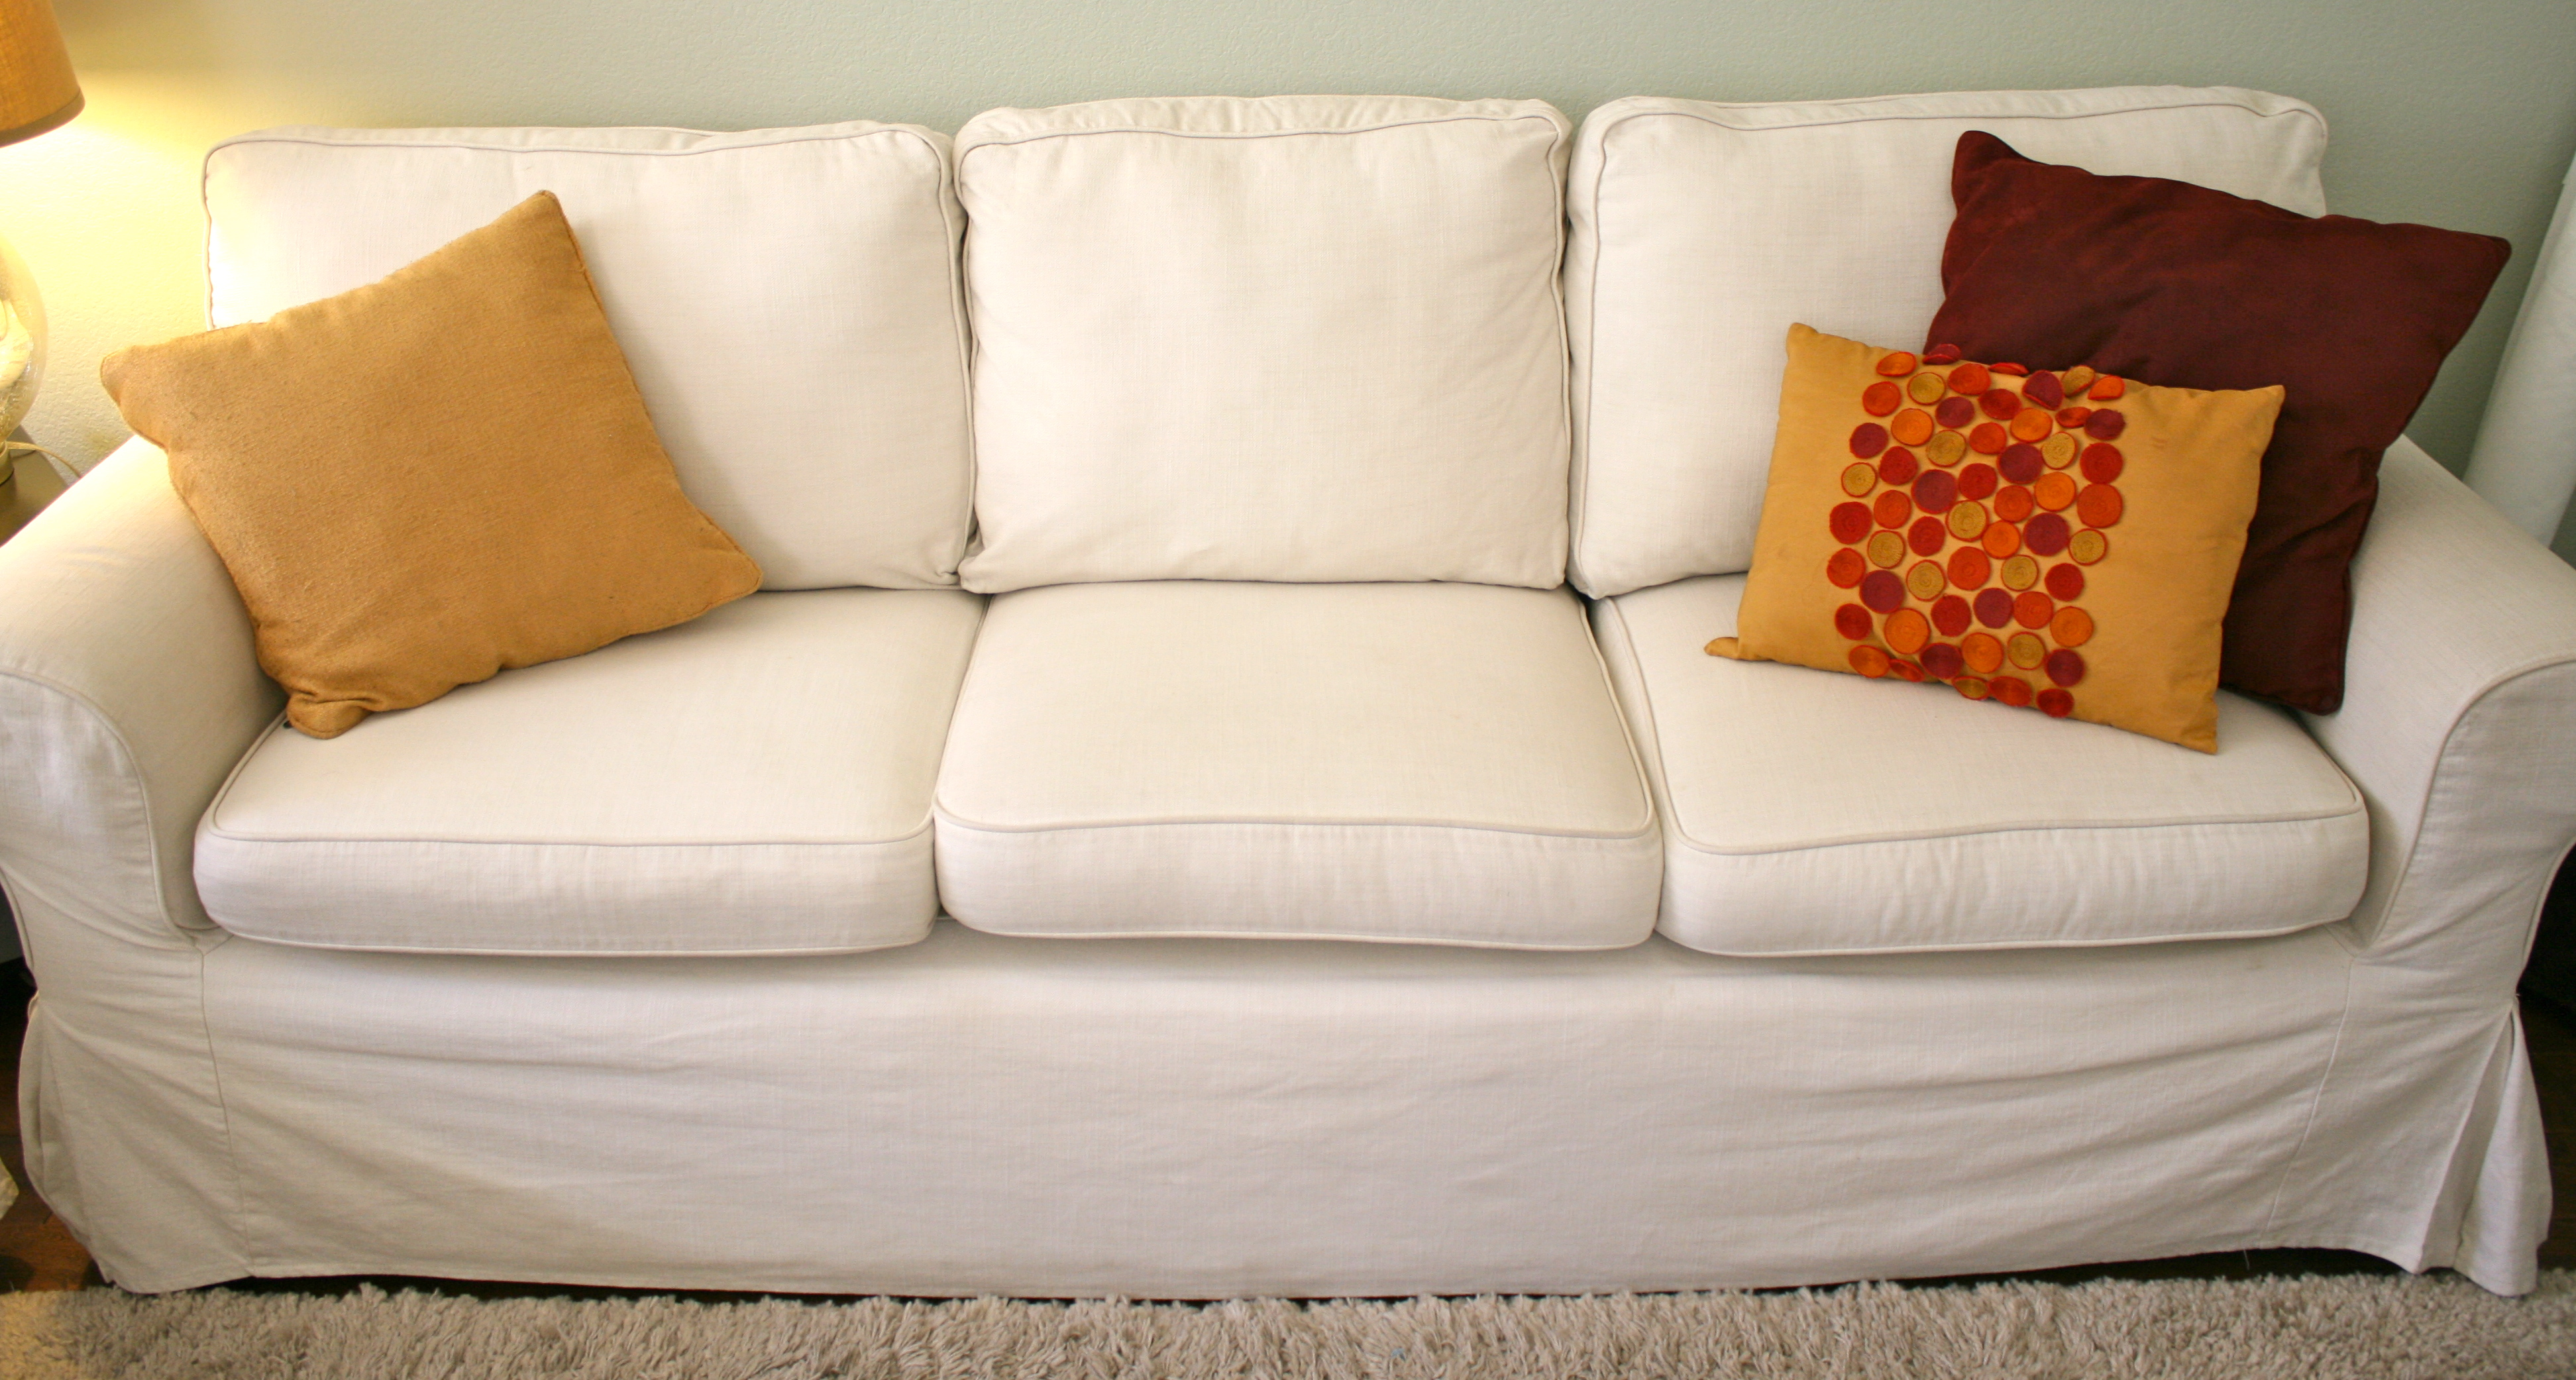 Here S How To Make Your Sagging Couch Cushions Look Plump Again Better Housekeeper